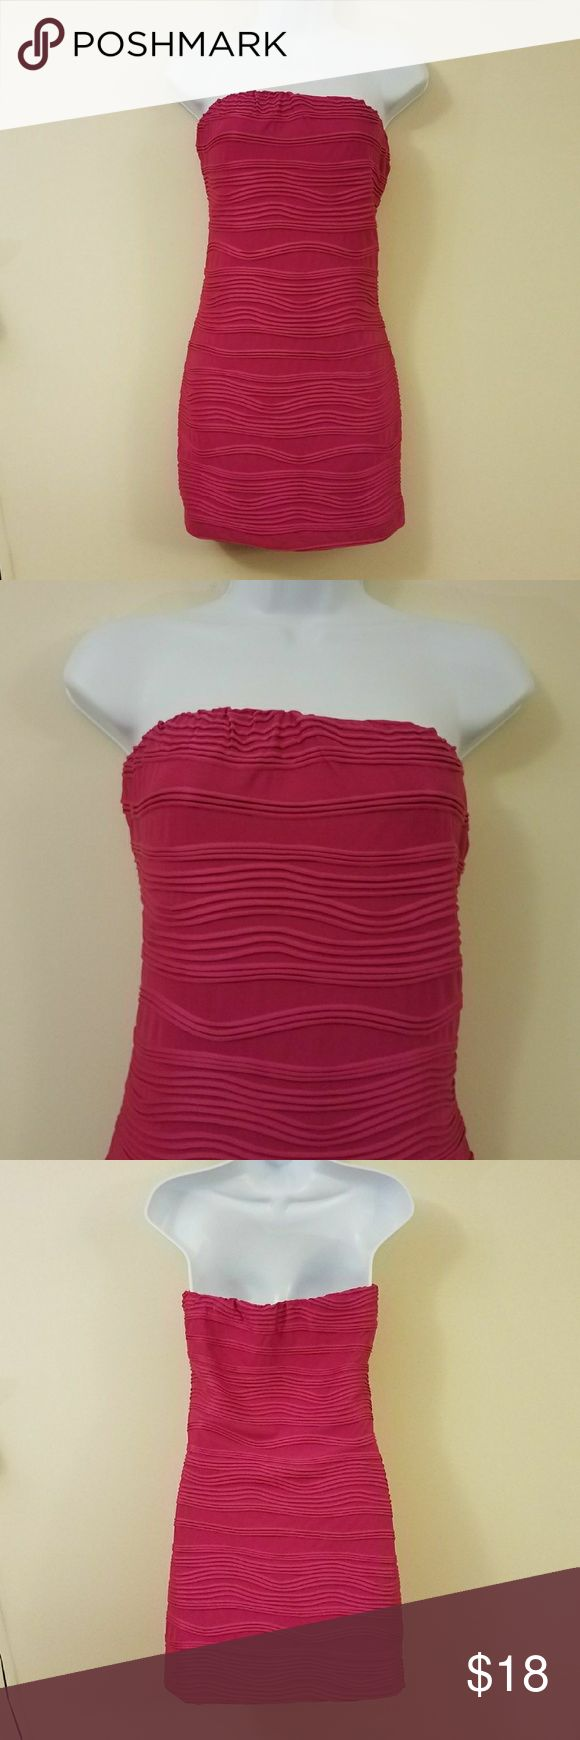 """Heart Soul Fuschia Textured Strapless Tube Dress HEART SOUL Women's Jr. Fuschia Pink Textured Strapless Tube Dress. Gently used. No Flaws. Size Large. Please see all photos for specifics.  Length: 25.5"""" Armpit to Armpit: 15""""  Measurements are taken laying flat and not stretched.  Thank you for your business! HeartSoul Dresses Strapless"""